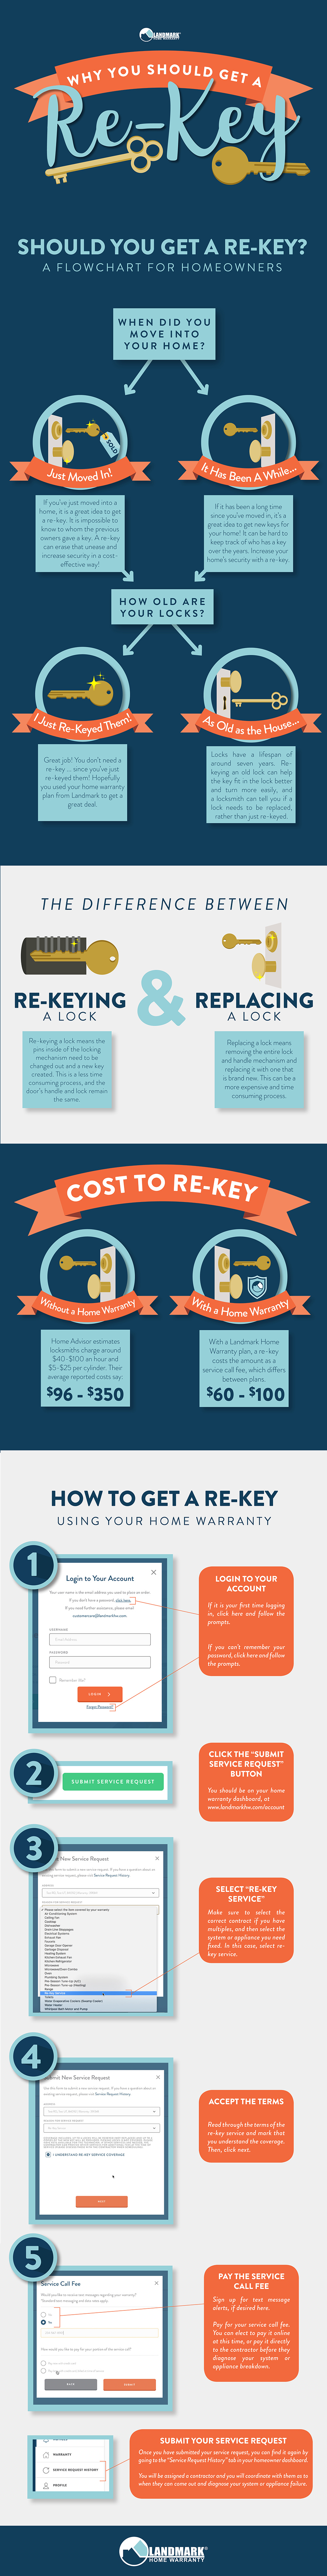 Why Rekey Your Home Full Infographic